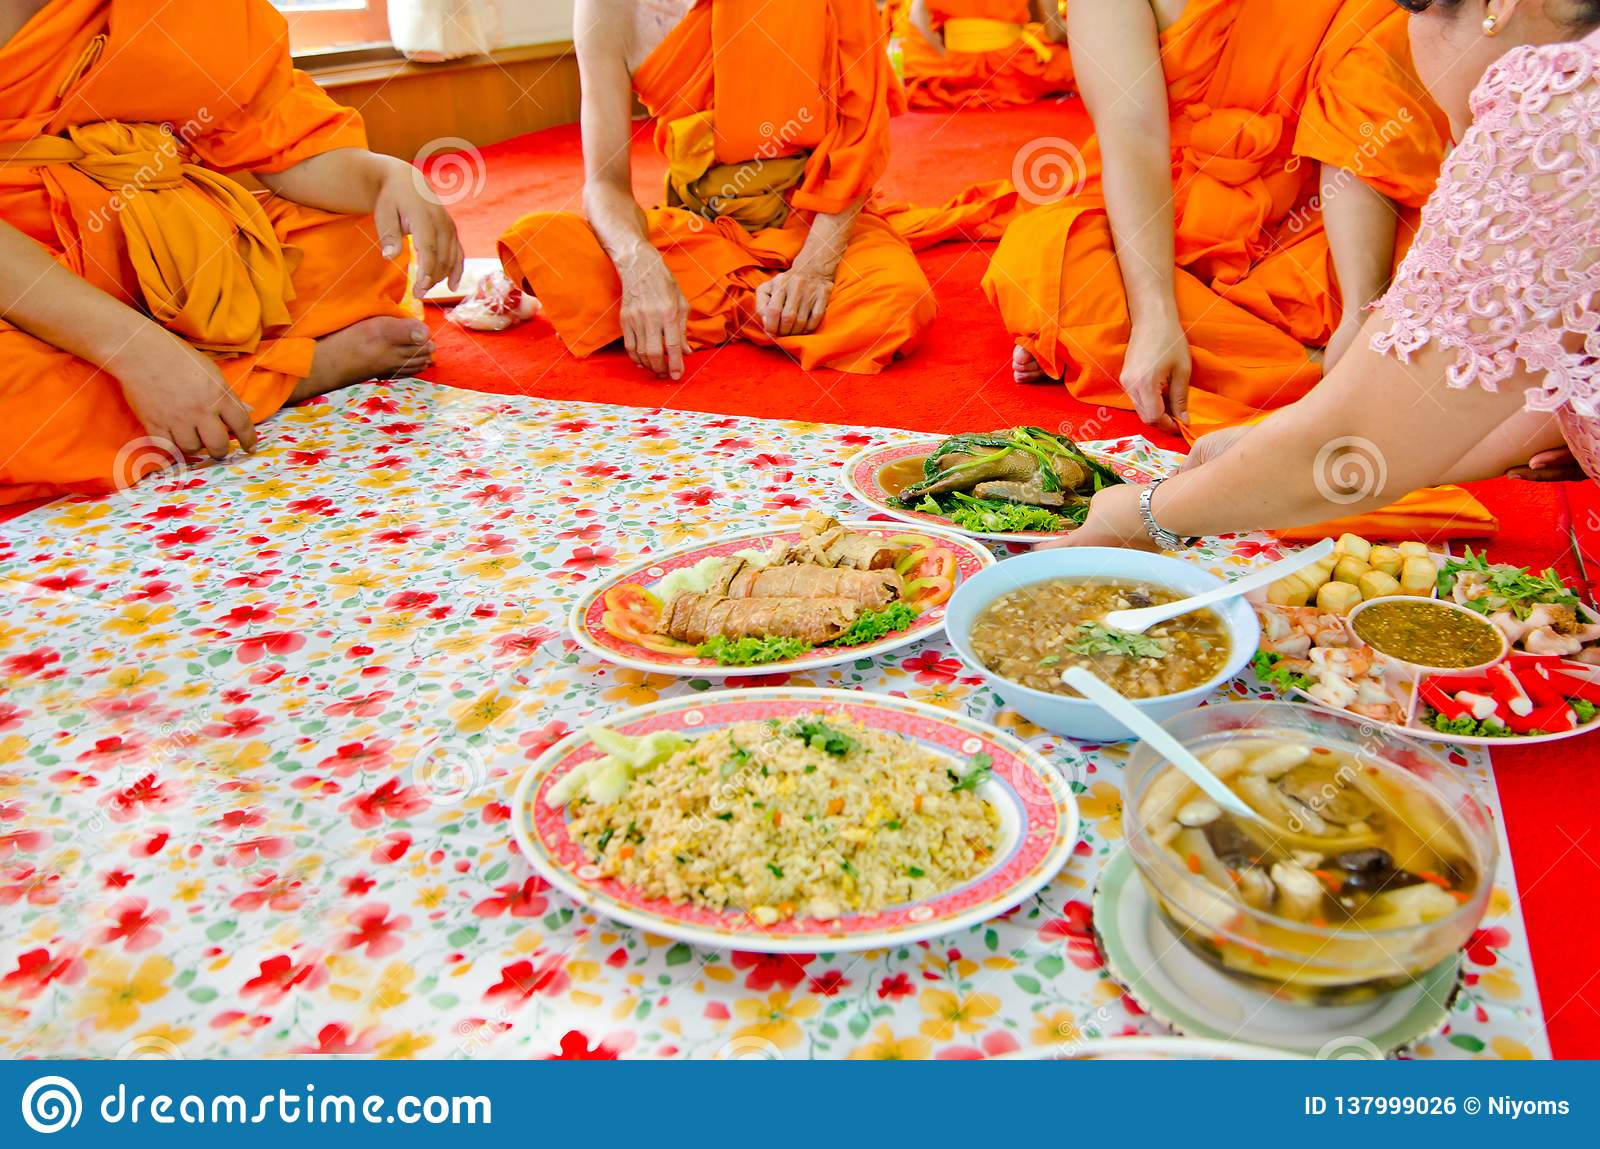 Offering foods to monks in Thai culture